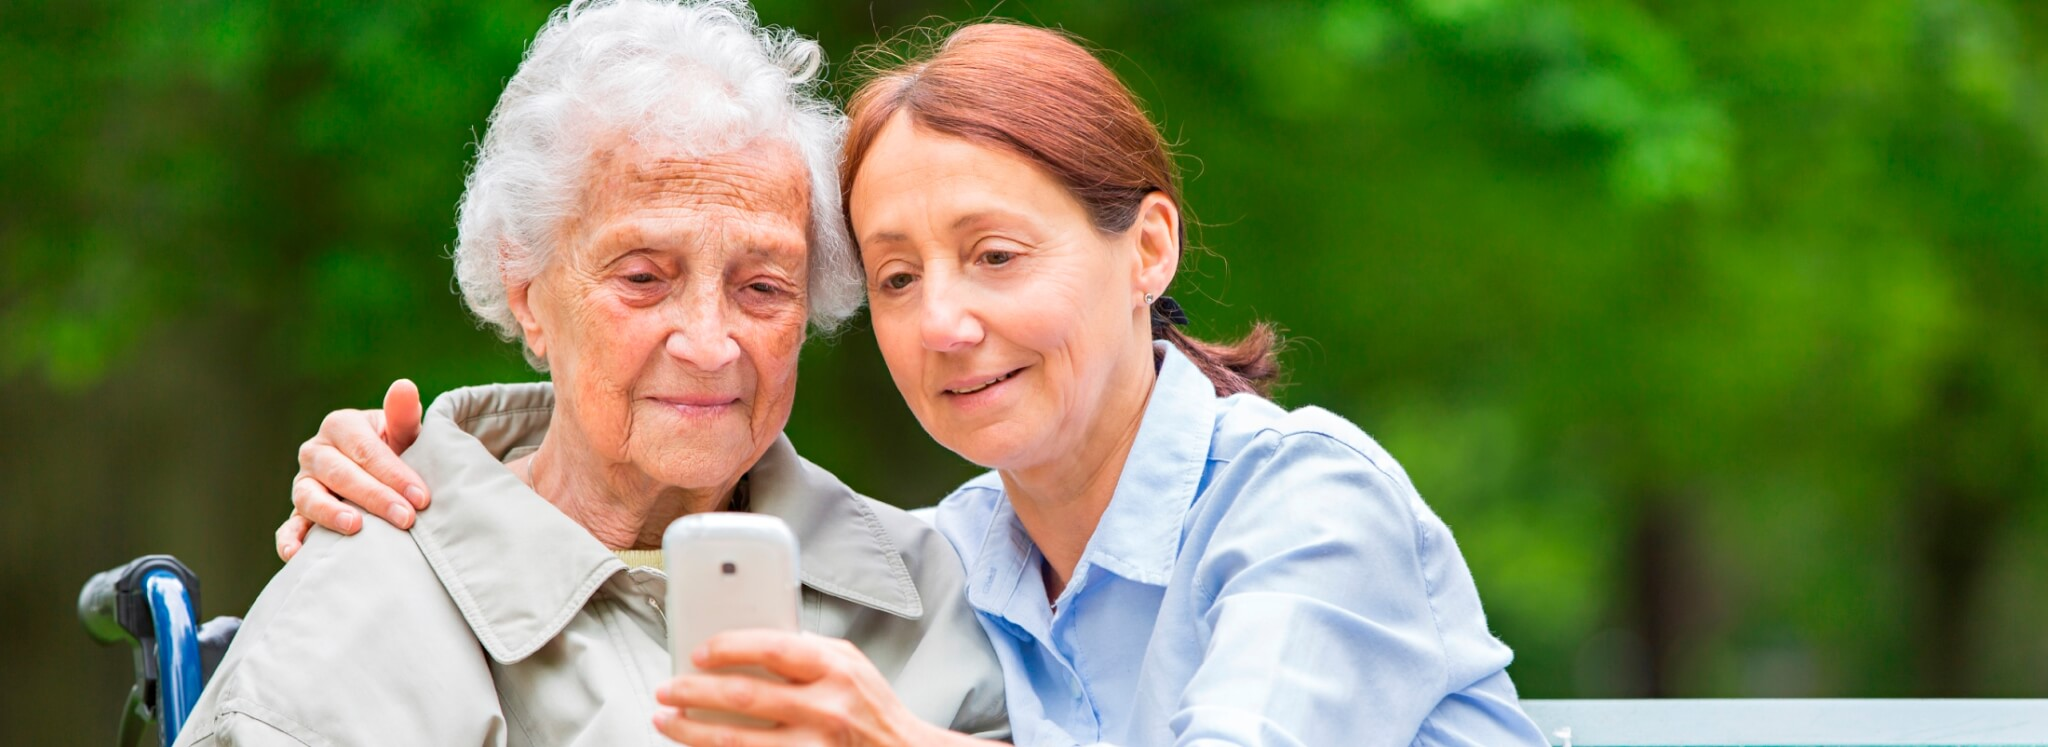 Care for Elderly from Mobile Phone